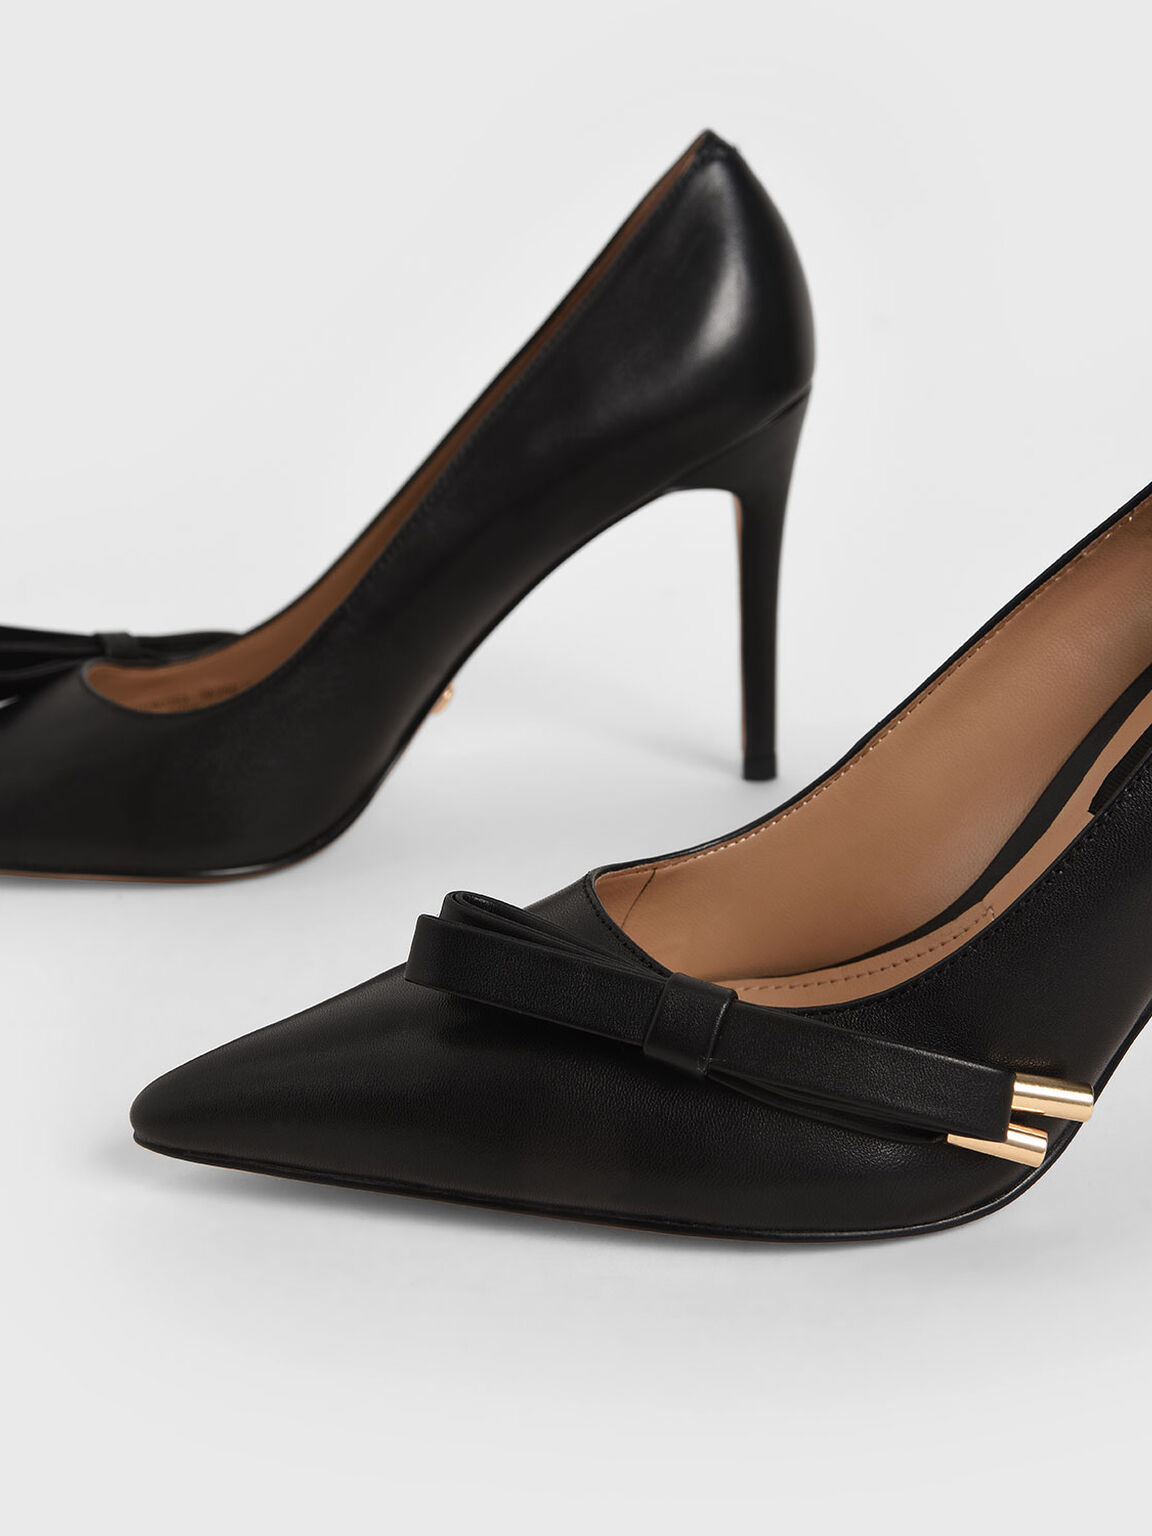 Leather Bow Stiletto Pumps, Black, hi-res